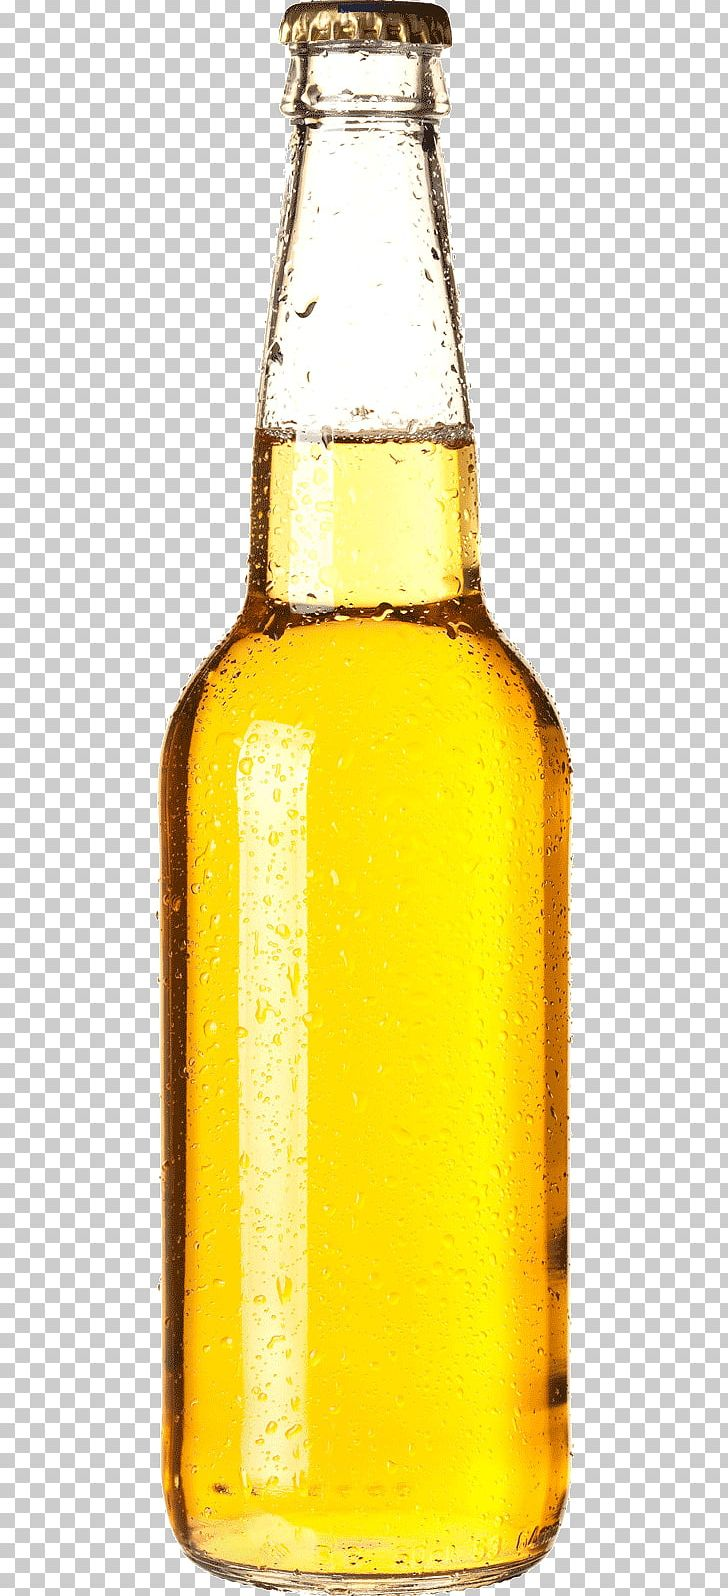 Beer Bottle Corona Brewery PNG, Clipart, Alcoholic Drink.